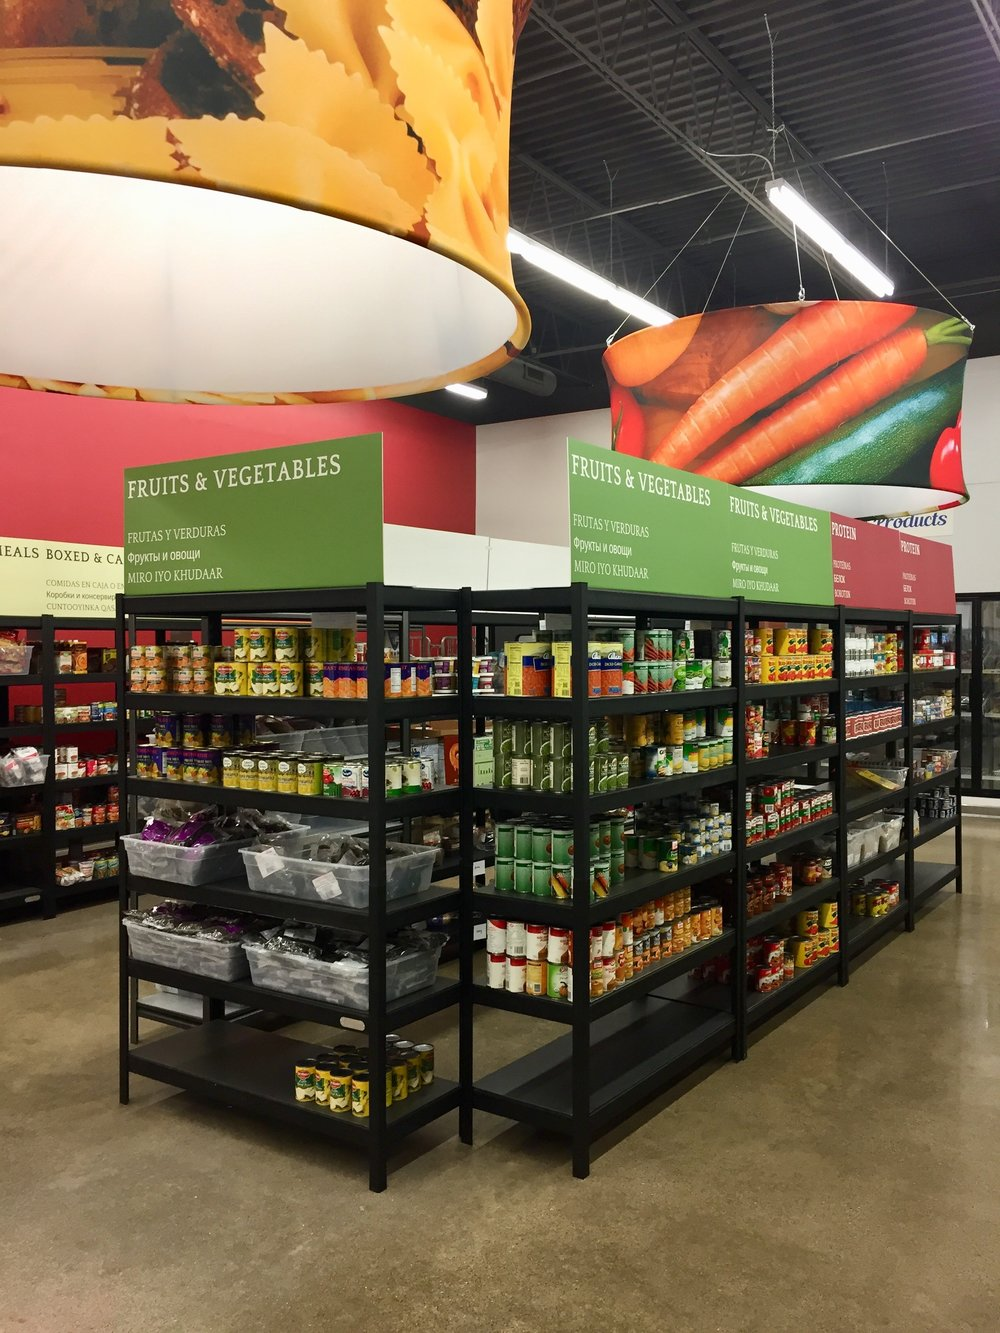 New shelves with wider aisles.